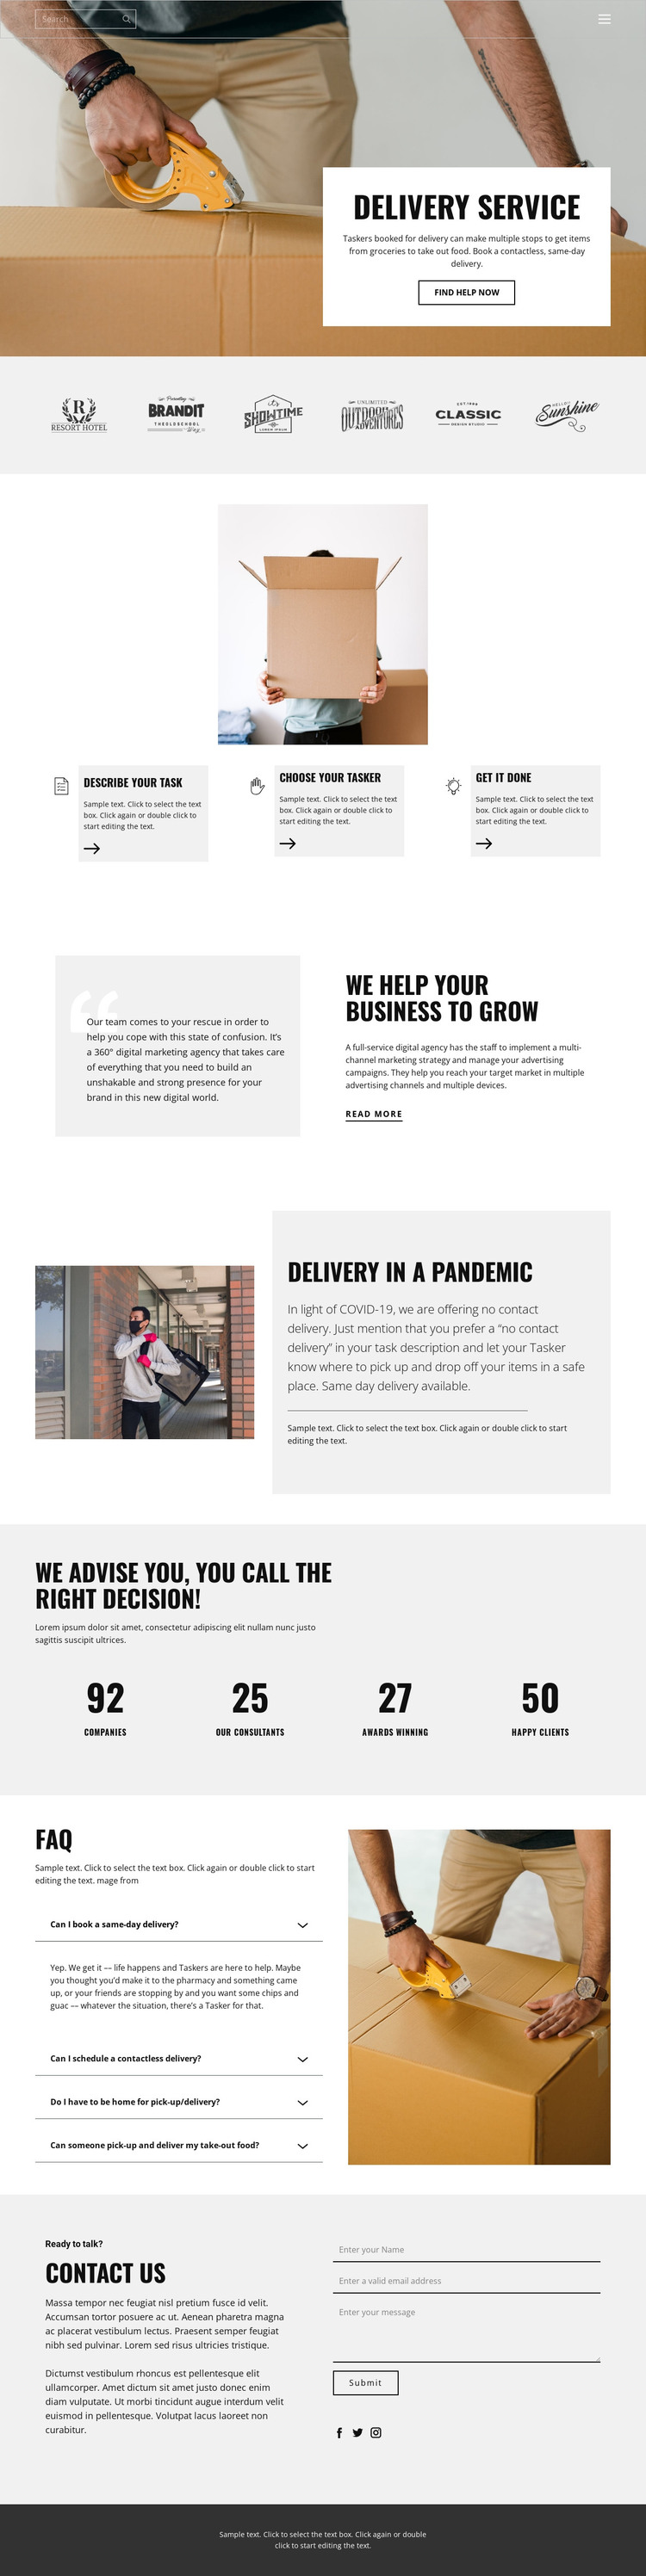 Fast and high quality delivery Web Design